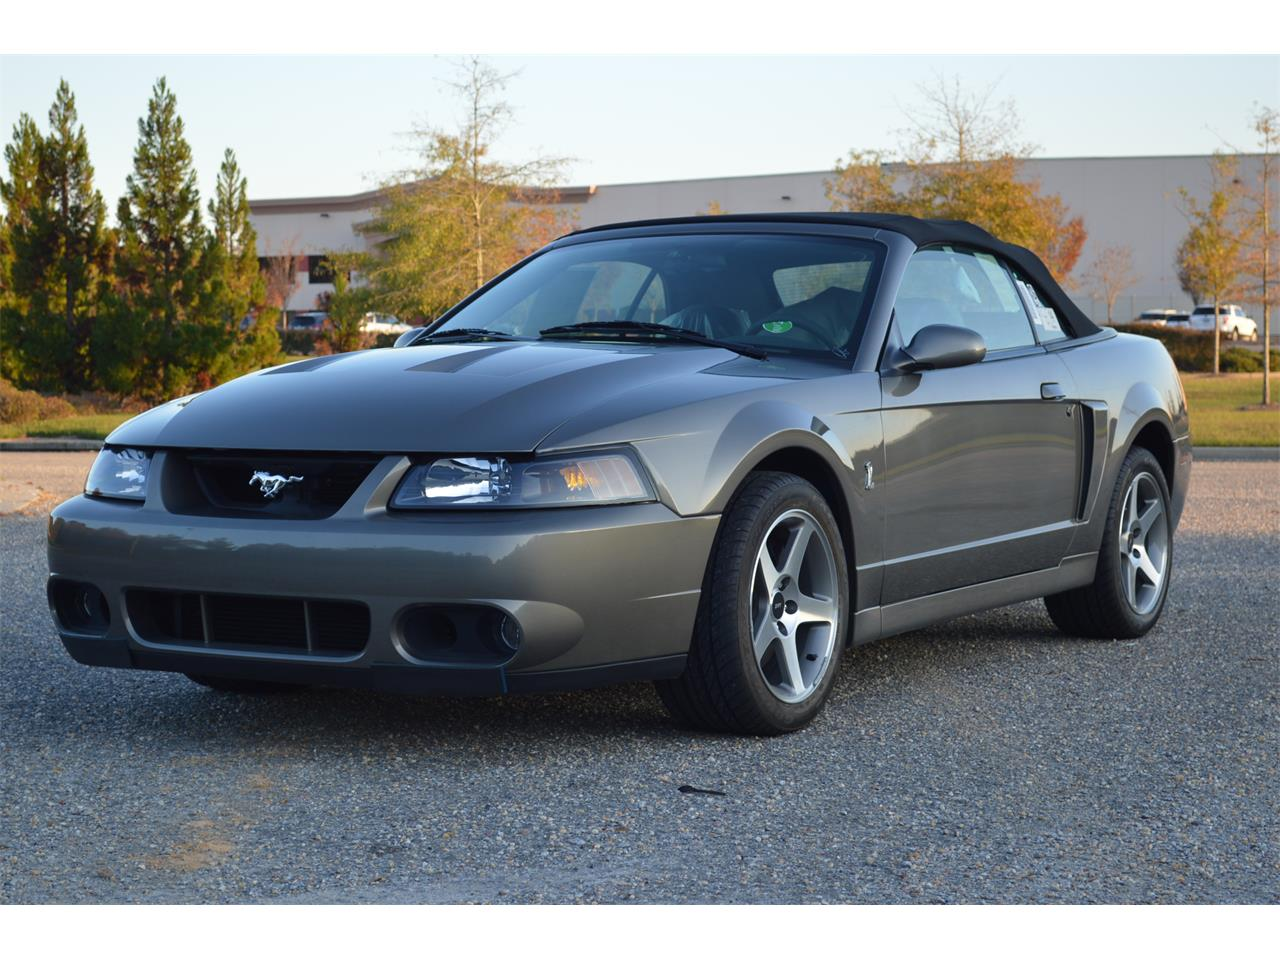 Large picture of 03 mustang cobra located in alabaster alabama 34900 00 offered by leaded